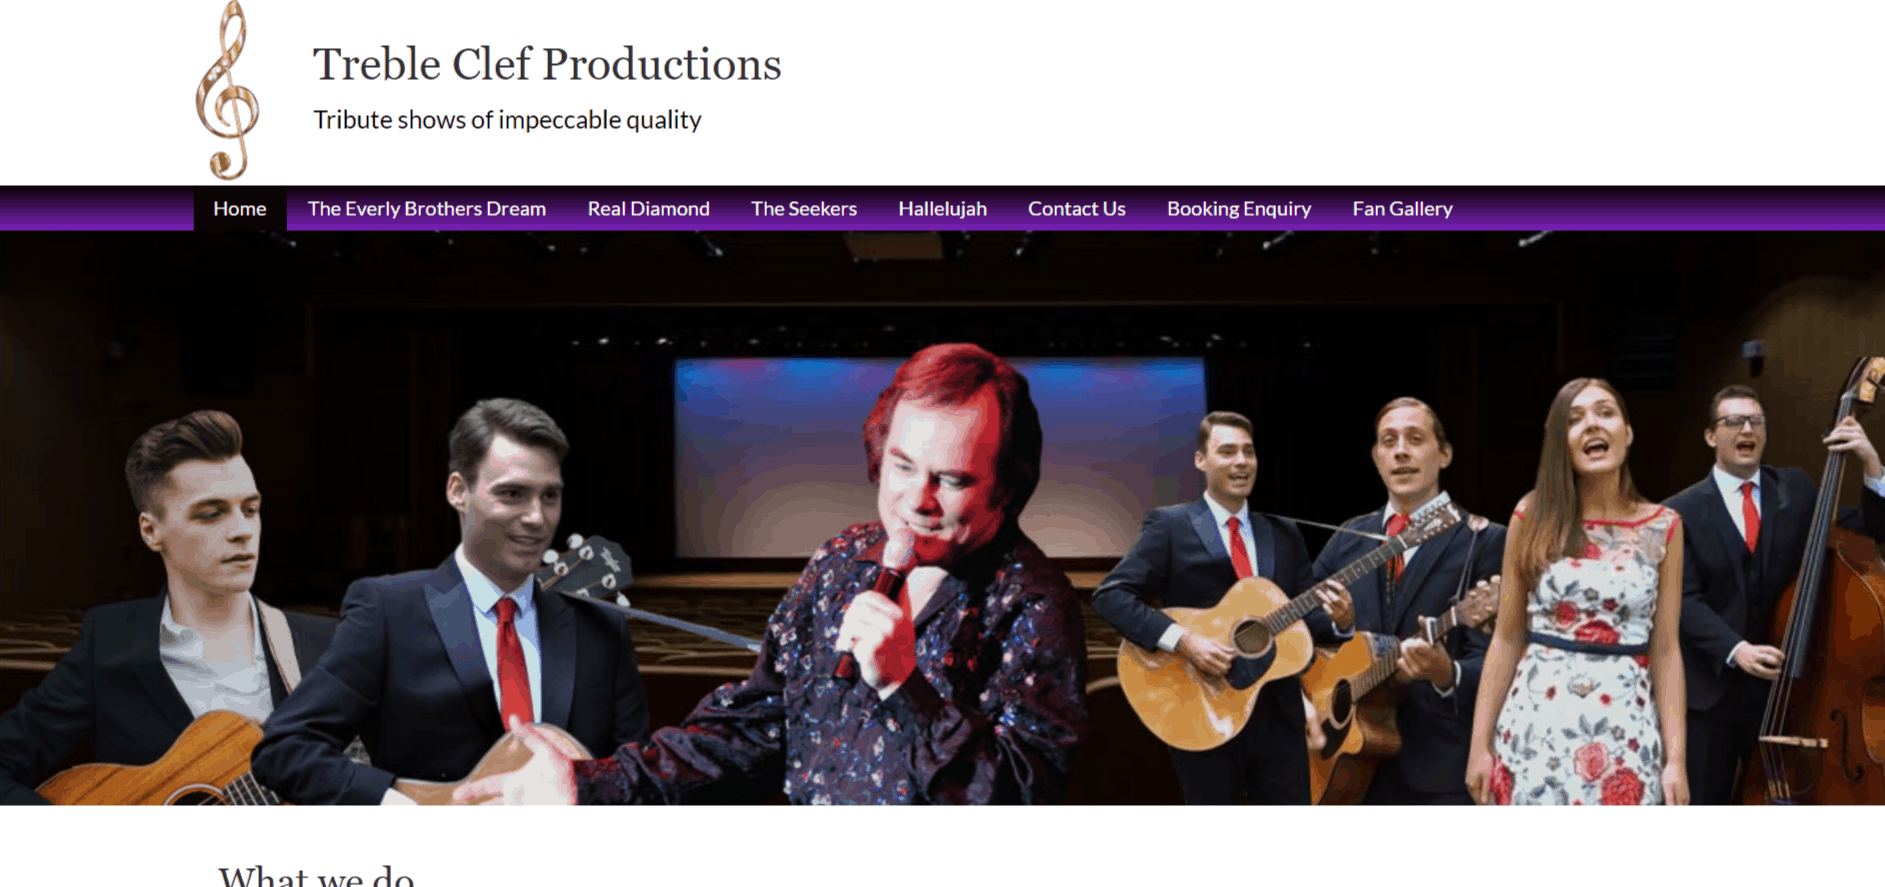 Treble Clef Productions